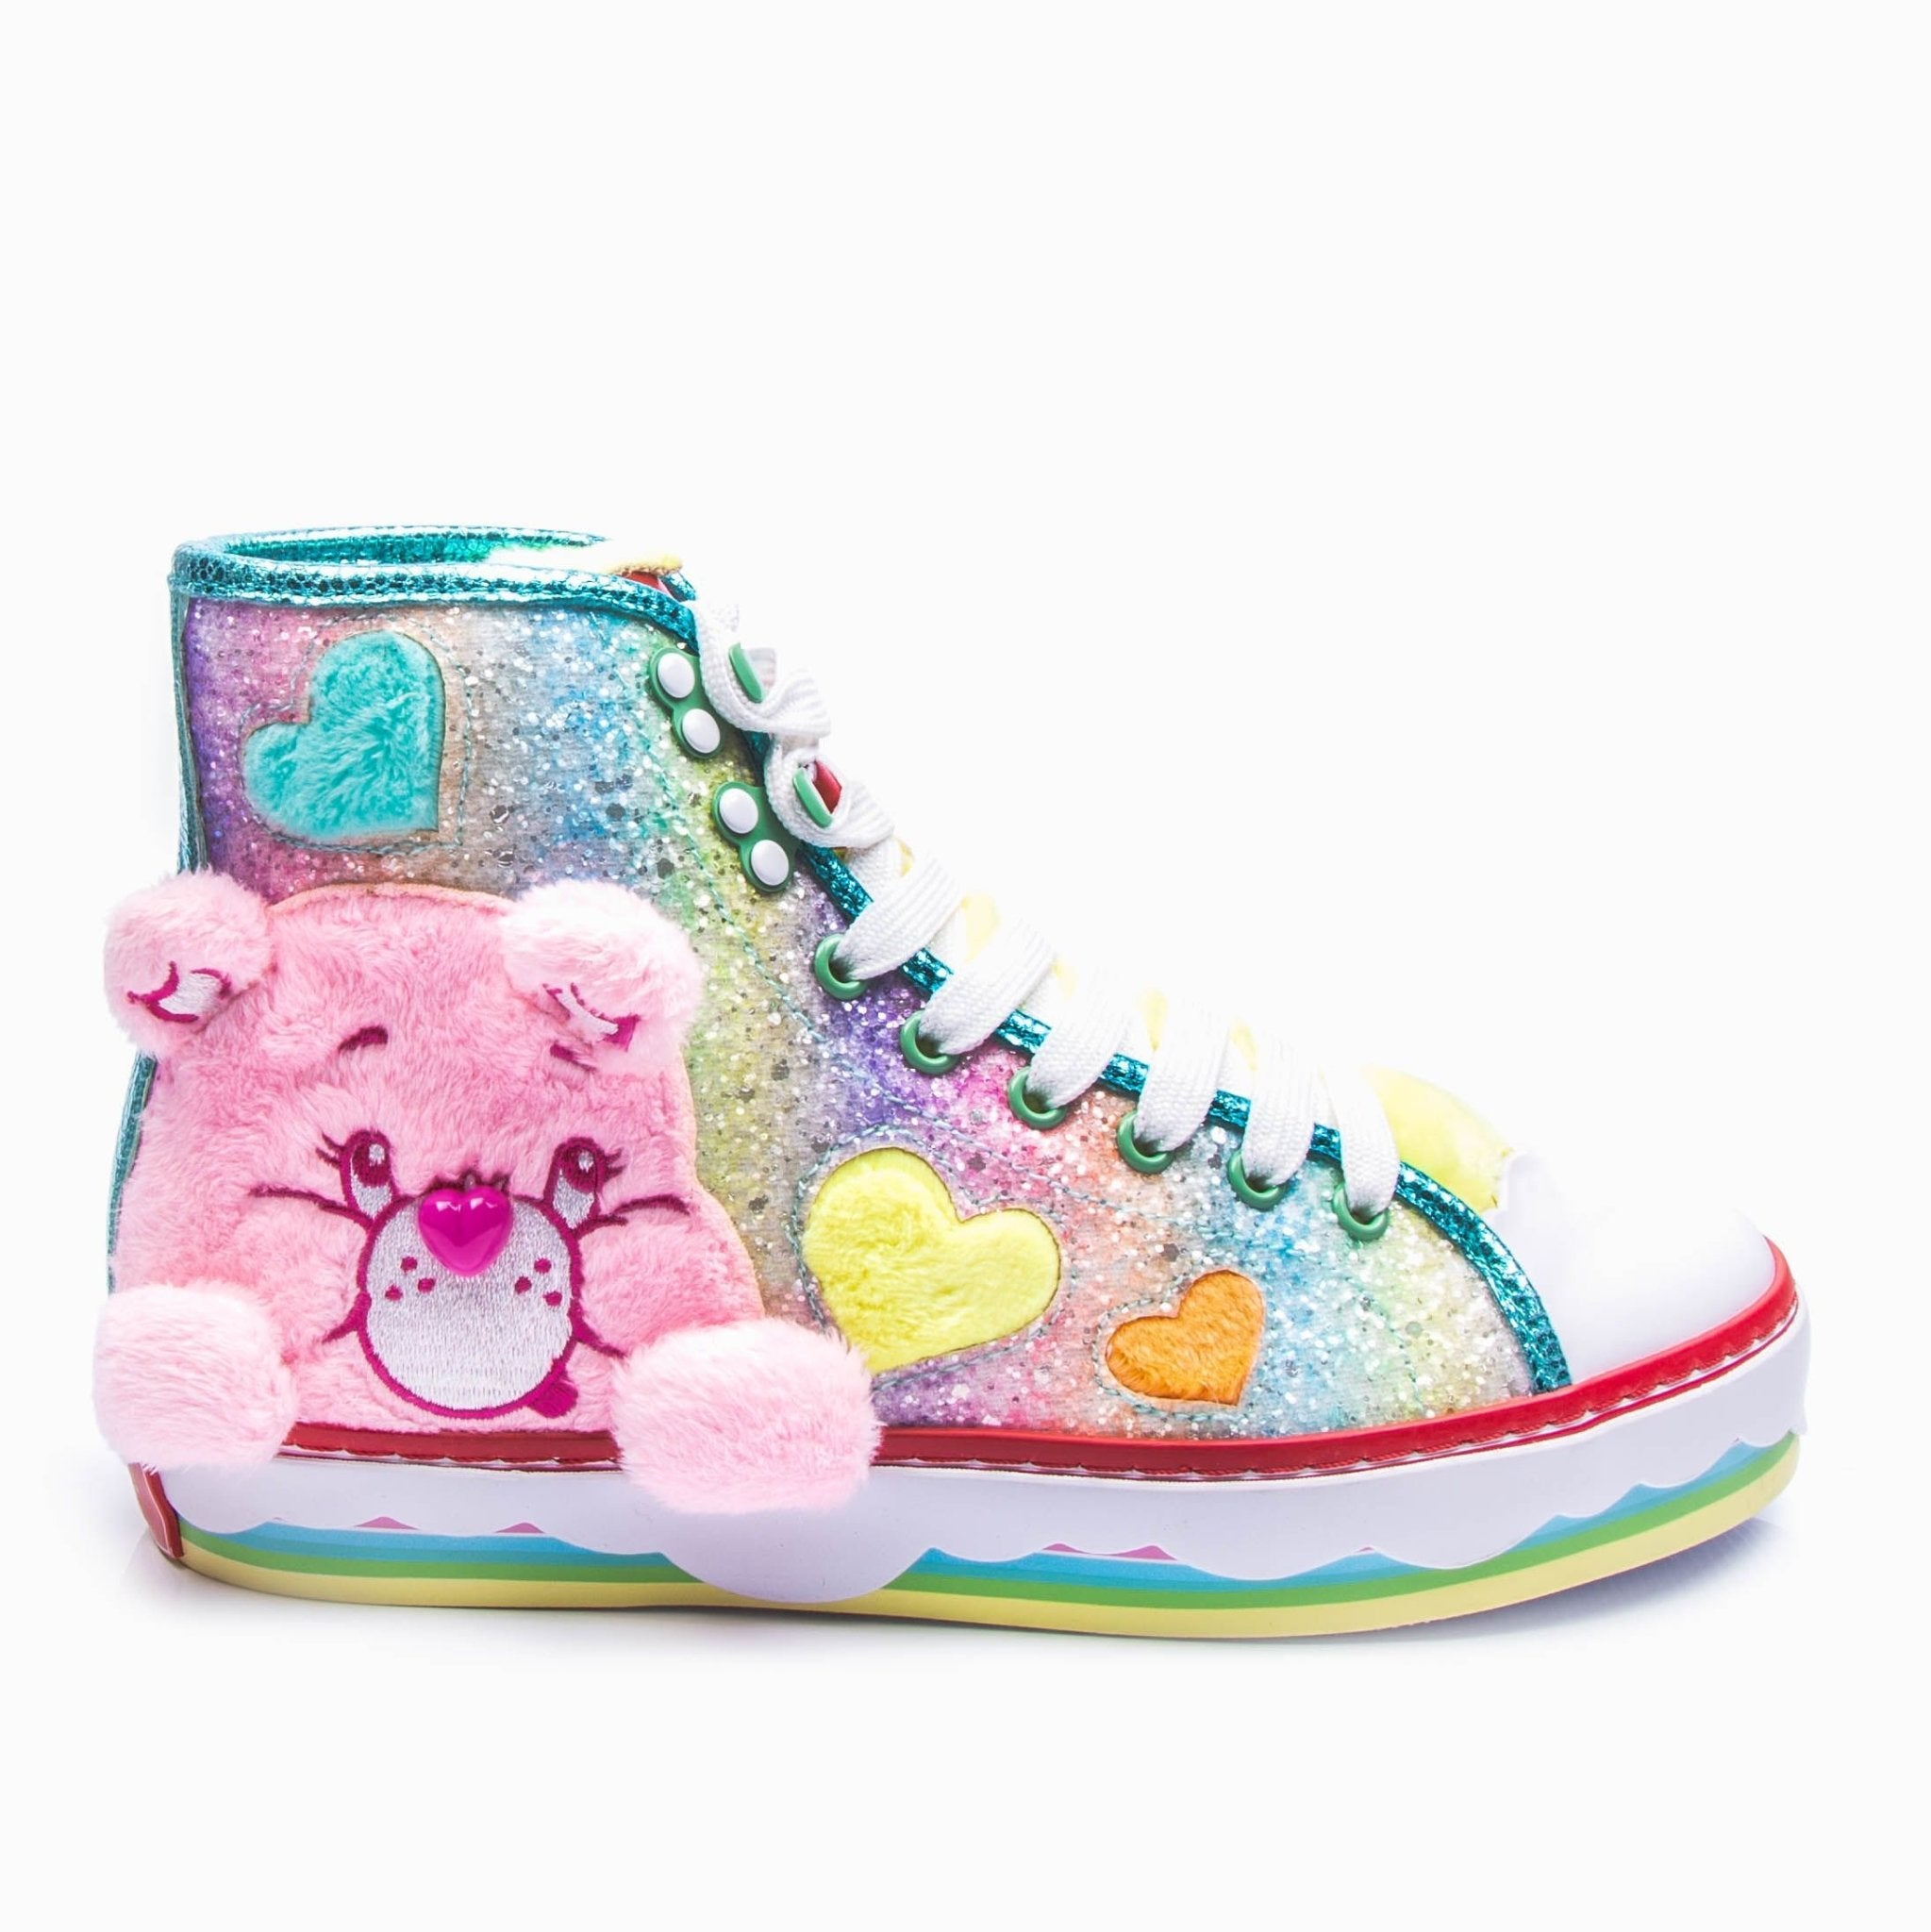 Cute & Adorable Irregular Choice - Rockamilly-Shoes-Vintage